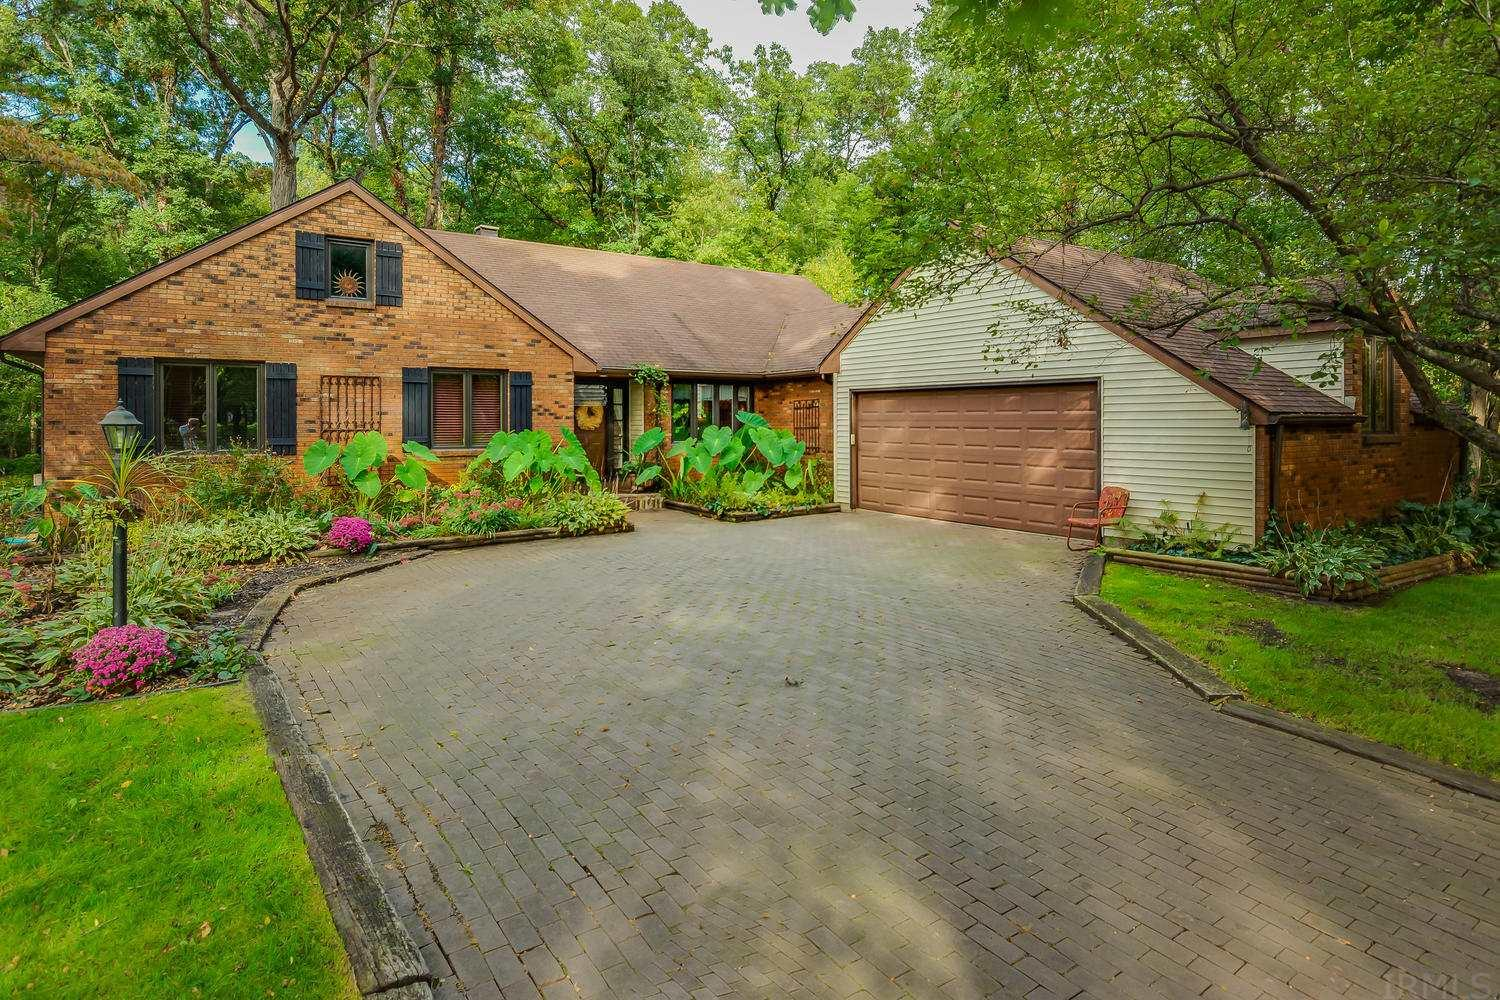 11989 Timberline Trace N. Granger, IN 46530